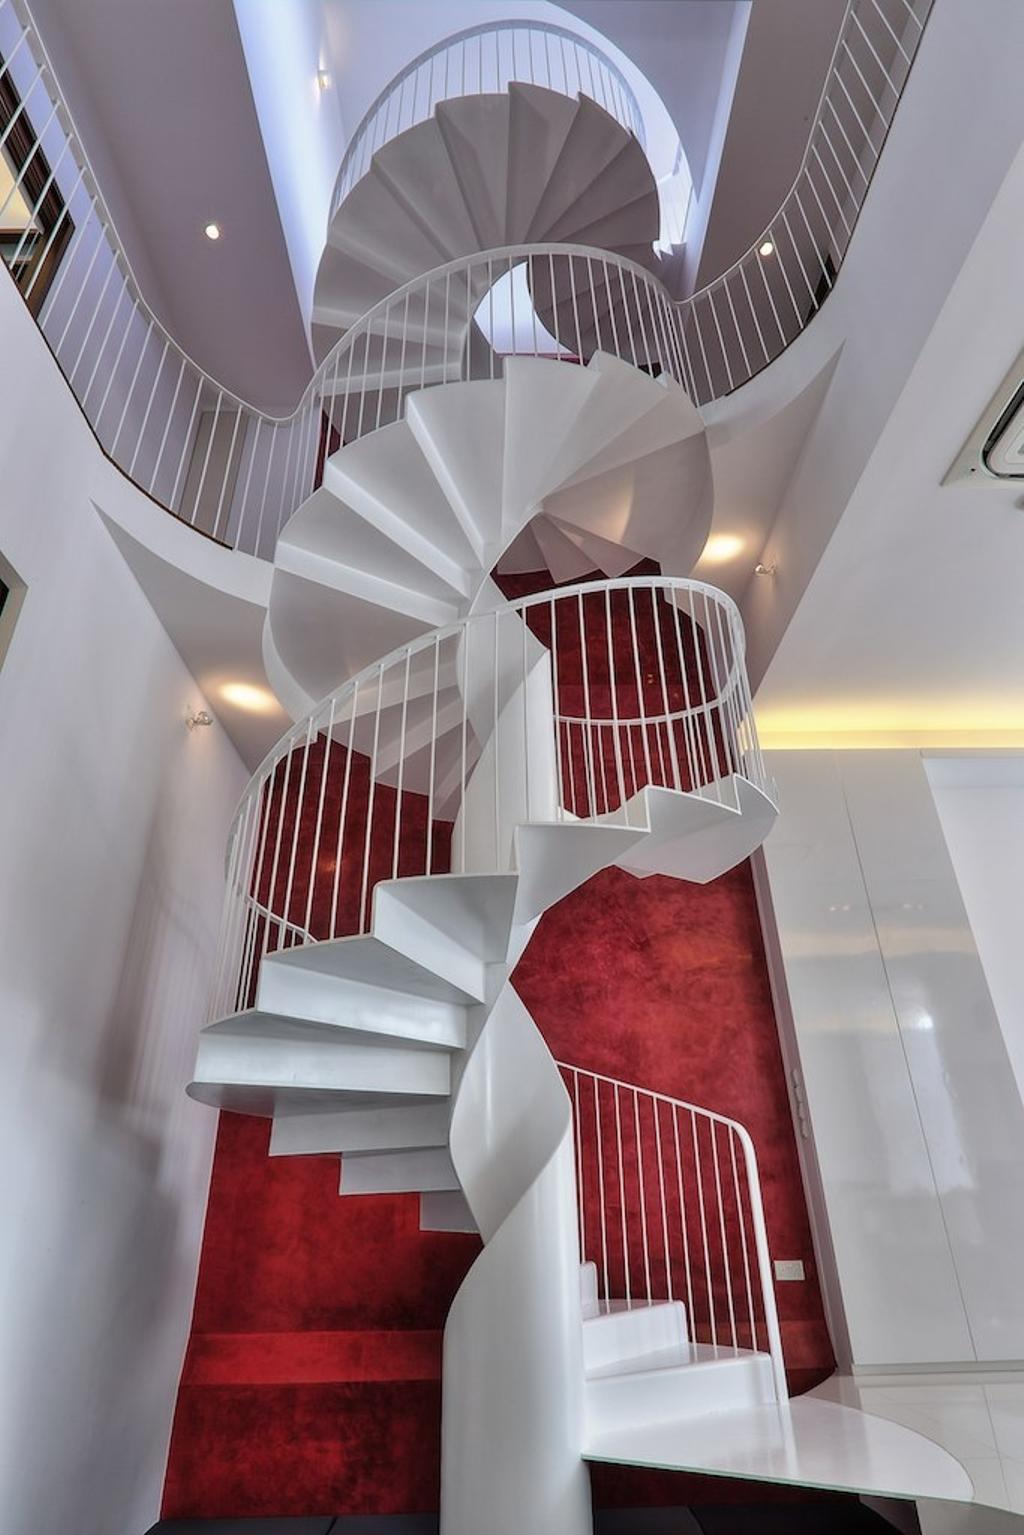 Modern, Landed, Siglap Rise, Architect, EZRA Architects, Textured Wall, Spiral Stairs, Spiral Staircase, Winded Stairs, White Stairs, White Staircase, Concealed Lighting, Concealed Light, Banister, Handrail, Staircase